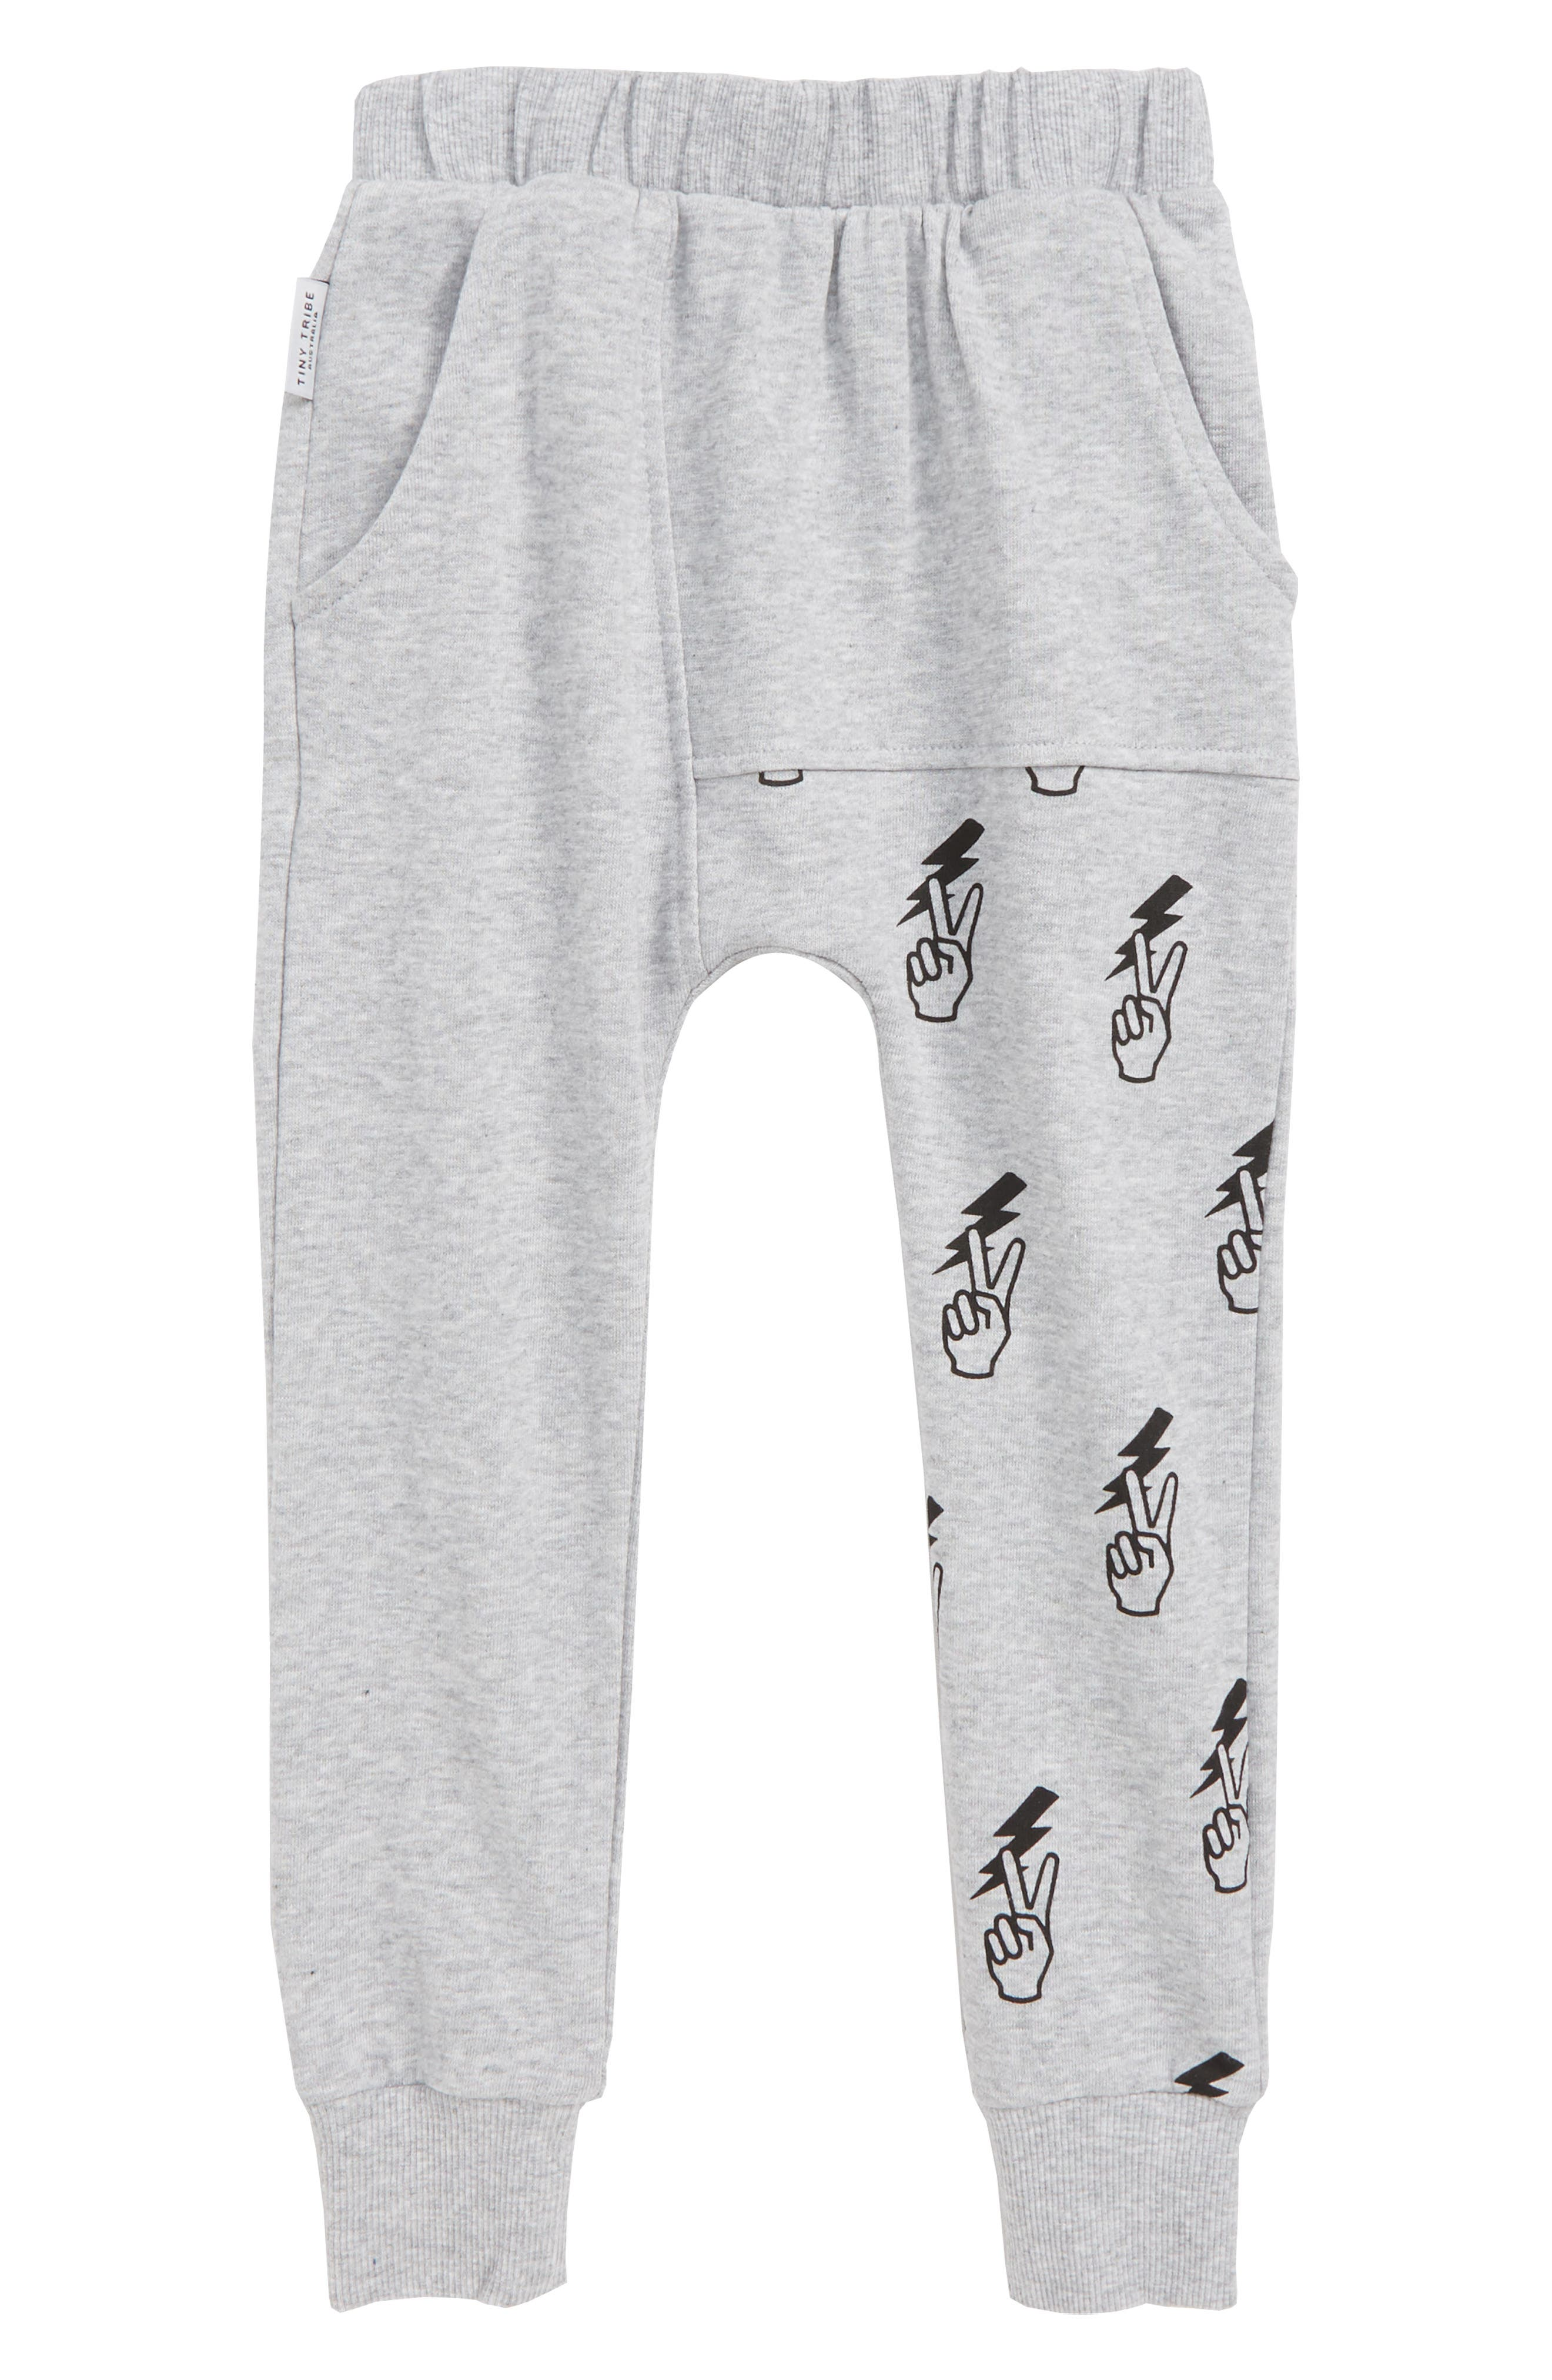 Peace Sweatpants,                         Main,                         color, 020